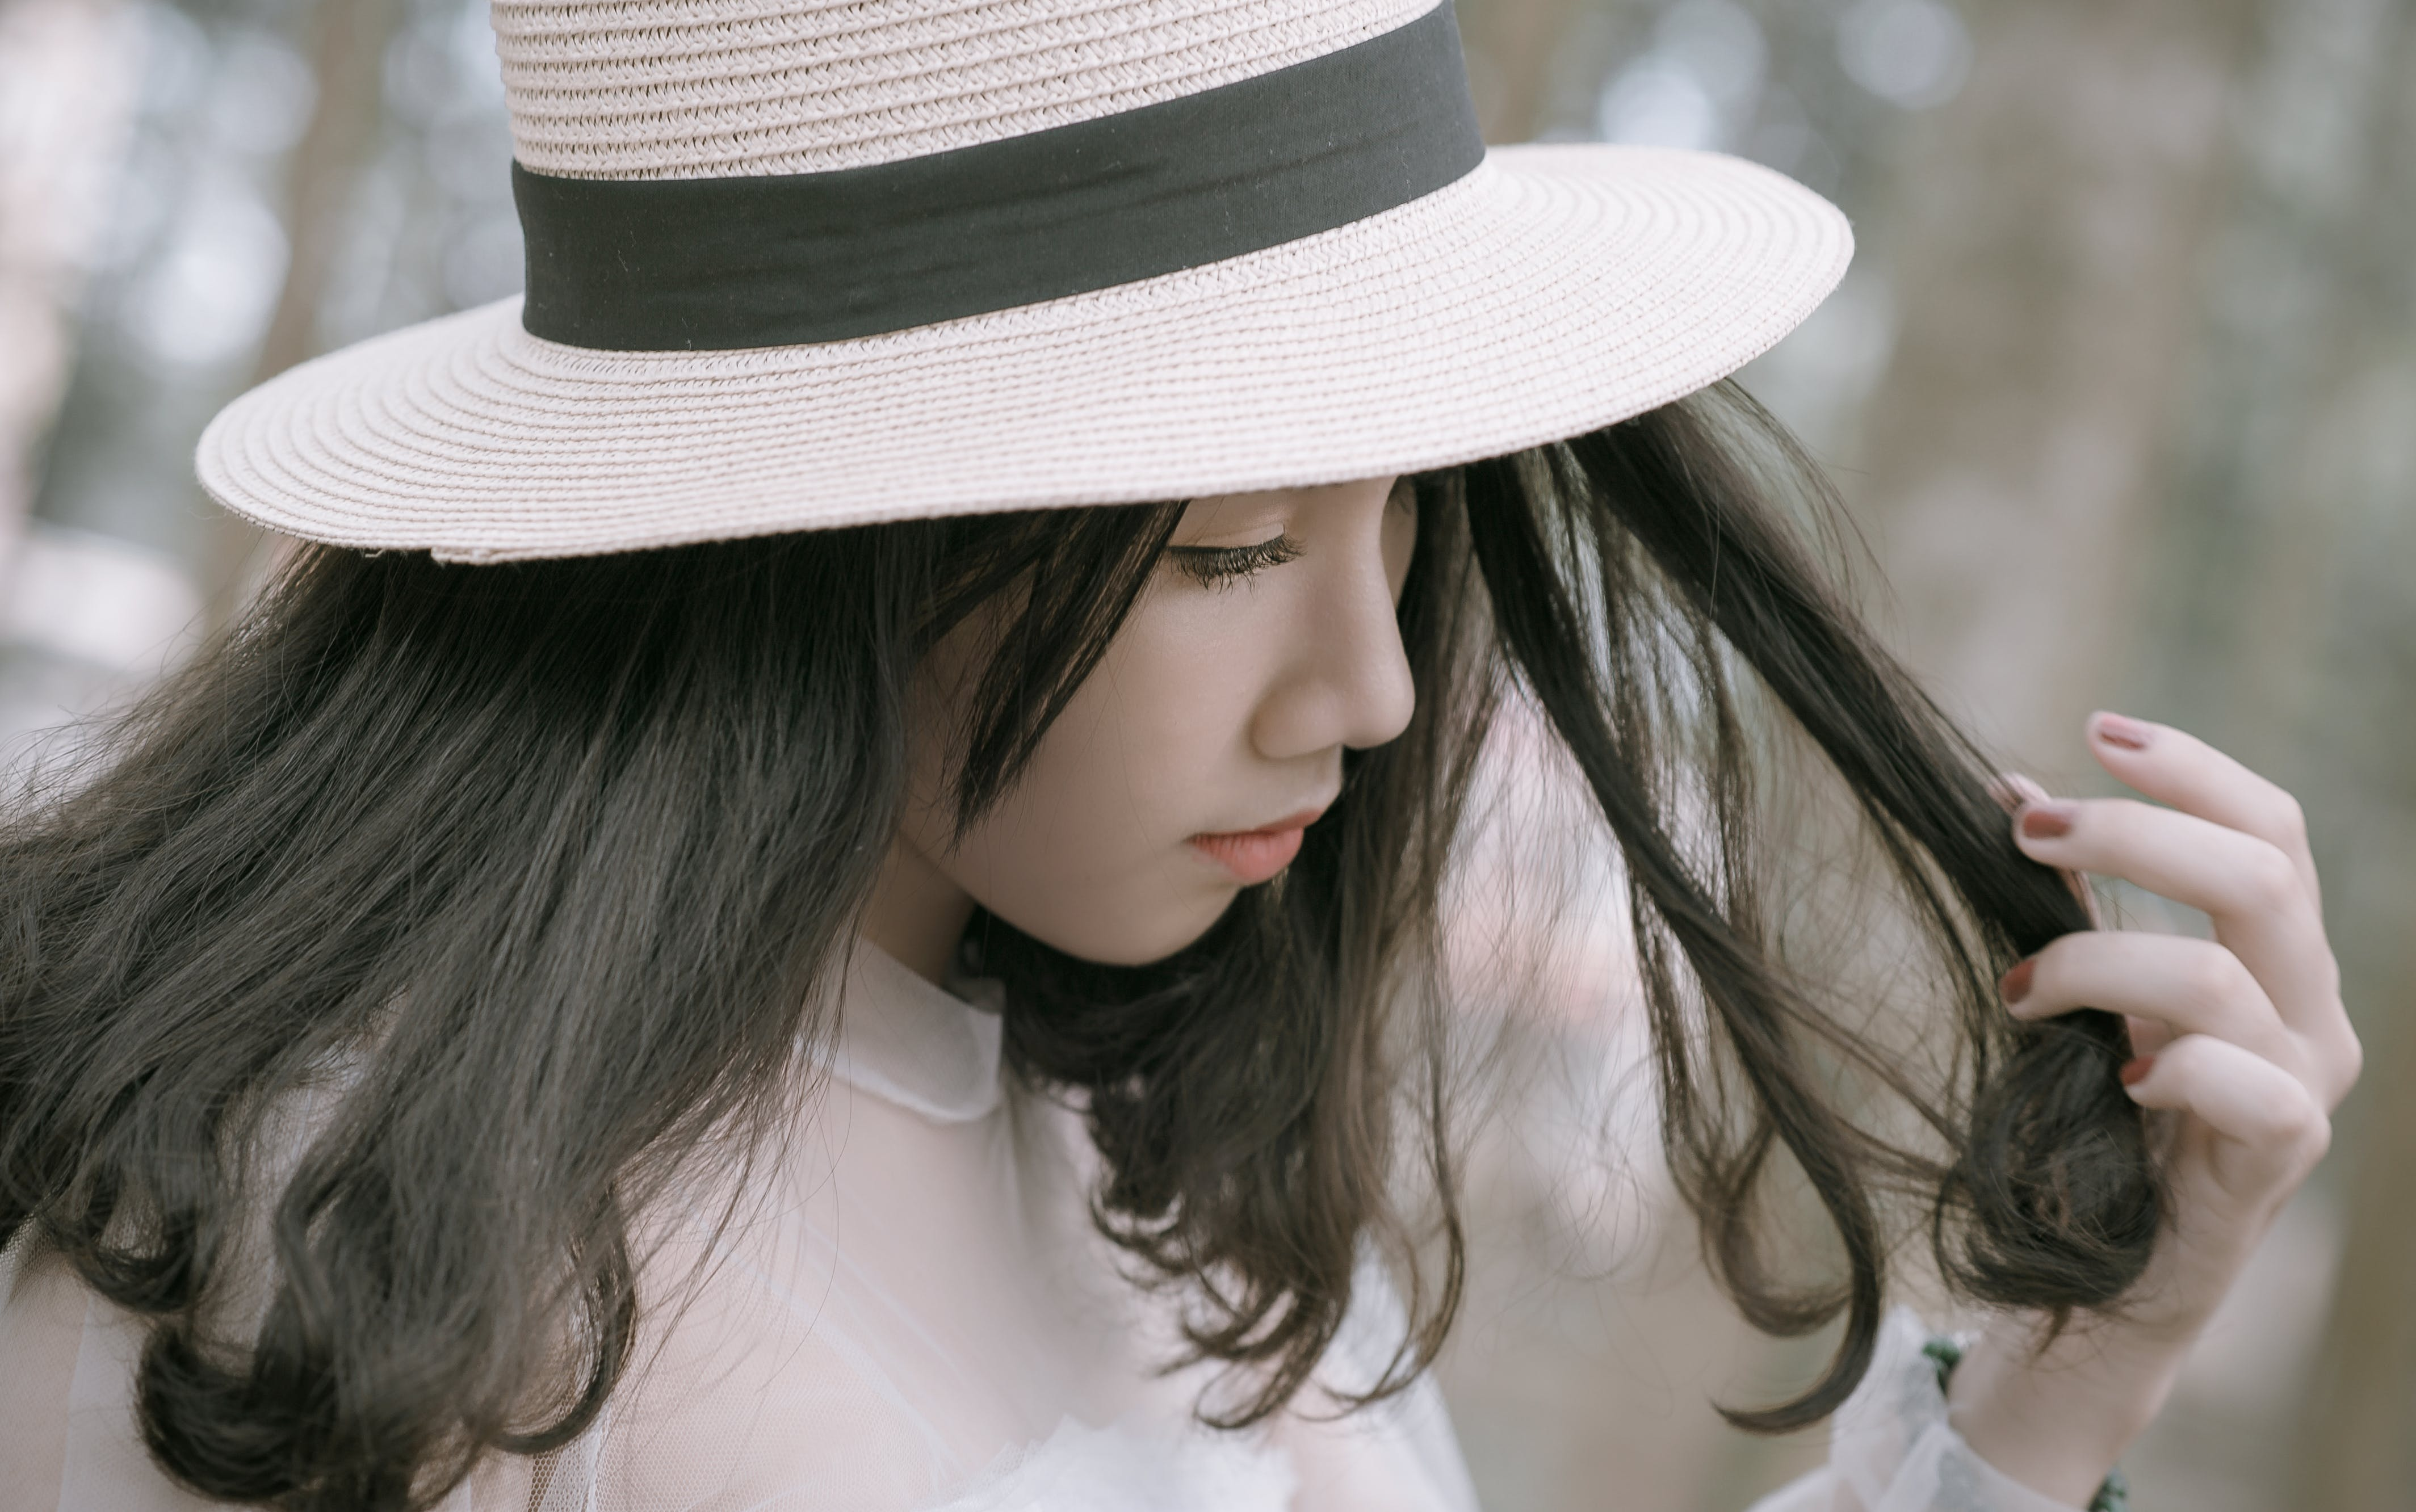 Woman Wearing White and Black Hat